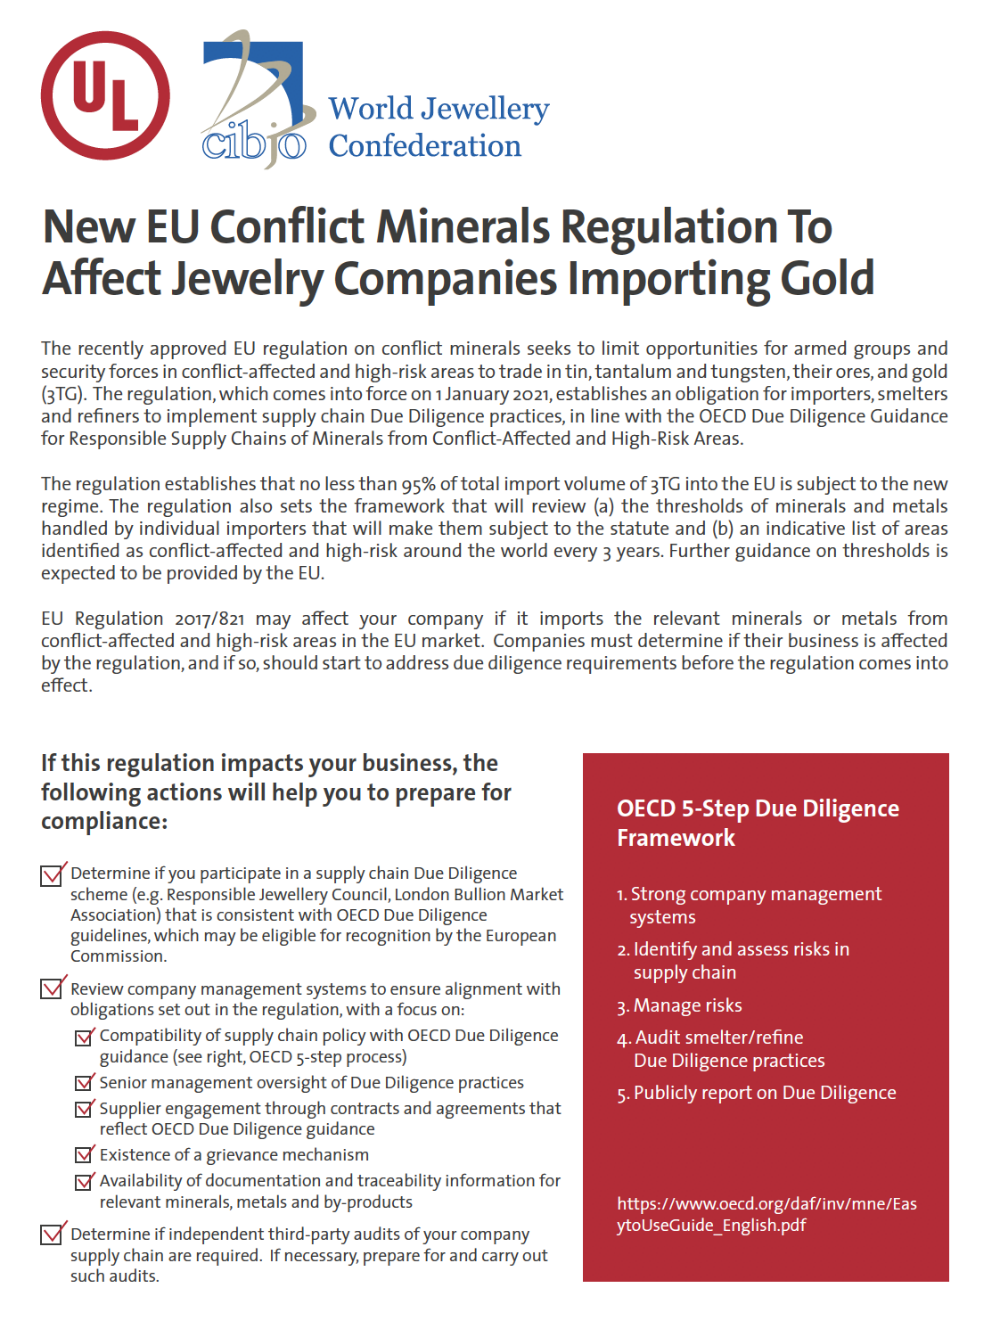 Thumbnail - New EU Conflict Minerals Regulation to Affect Jewelry Companies Importing Gold